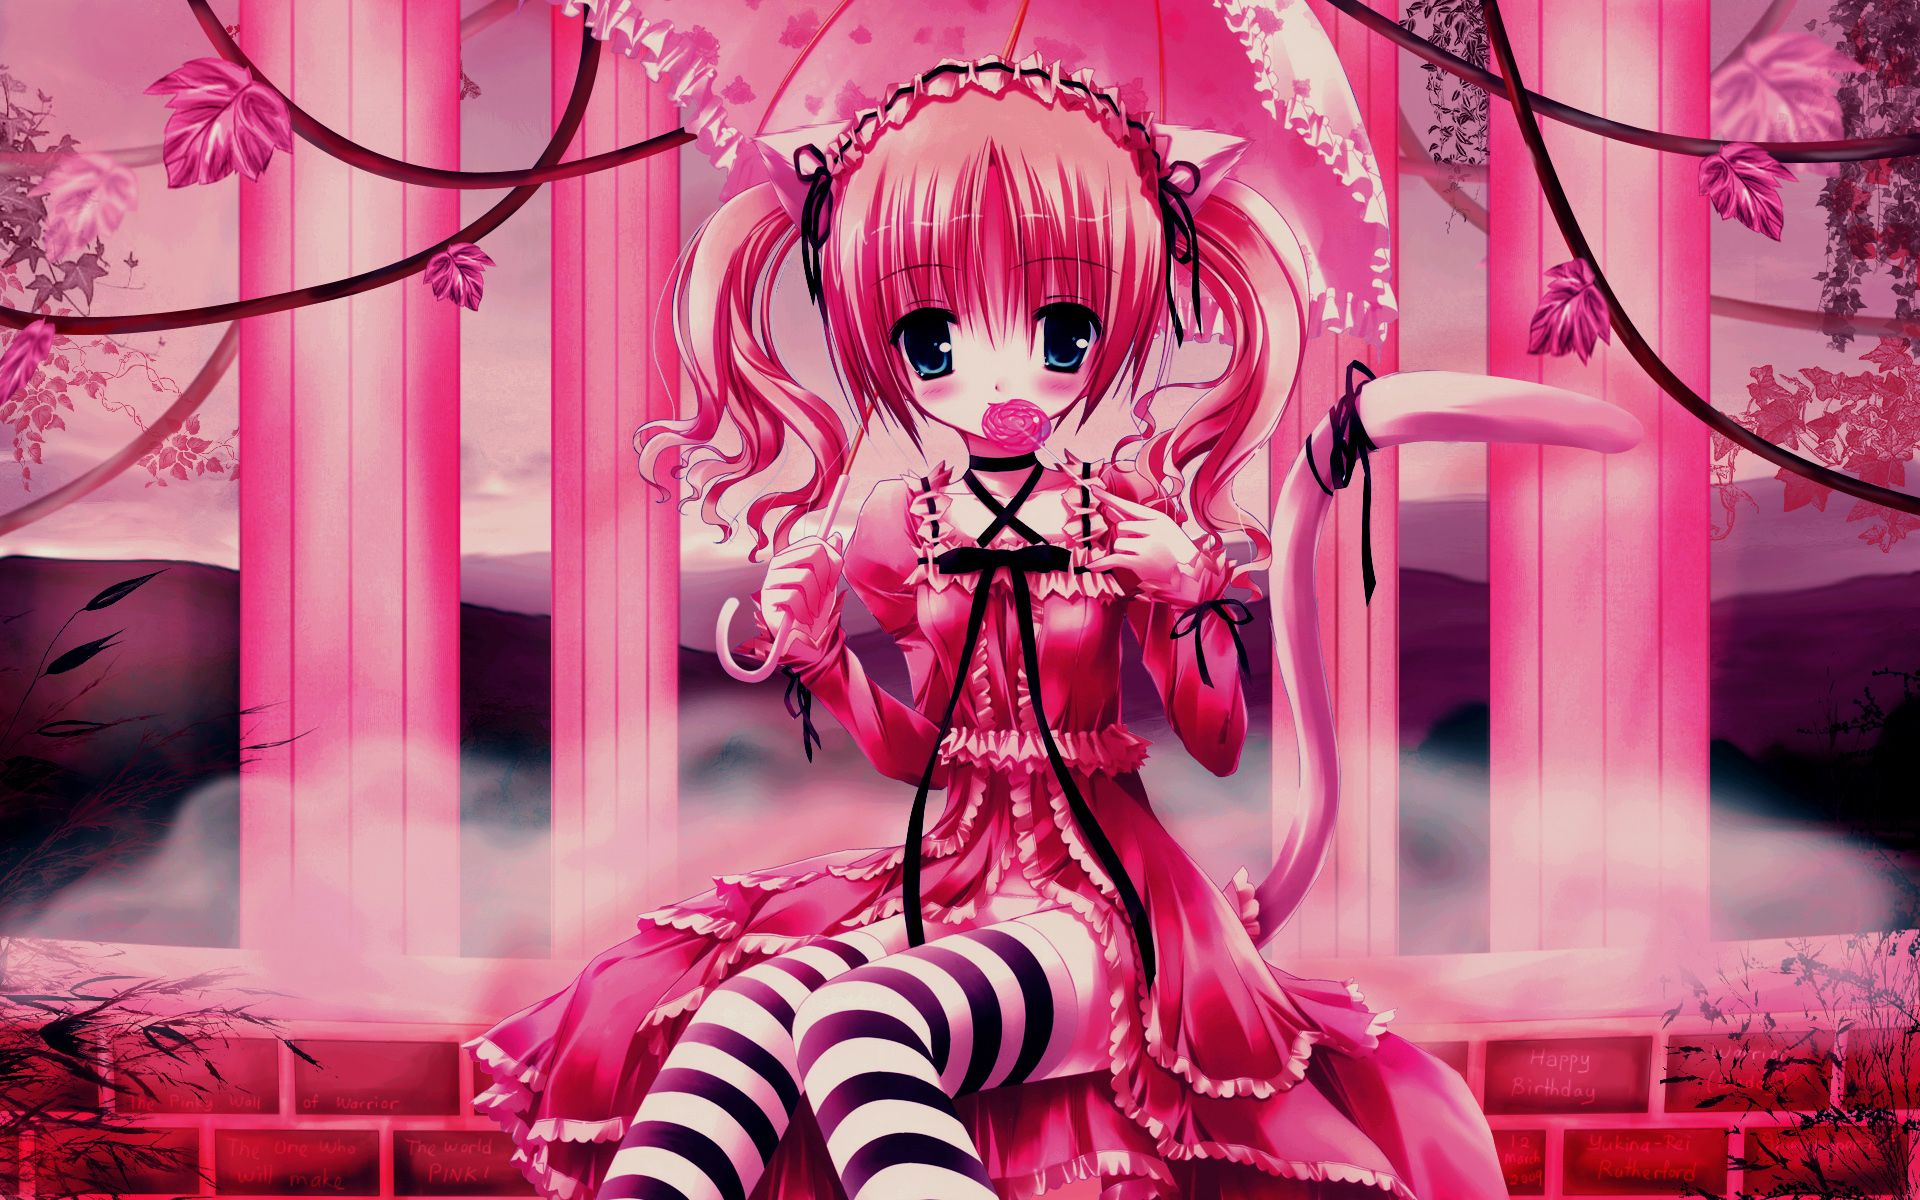 Girly anime cat girl with lollipop 00 mom of 4 gets a - Girly girl anime ...